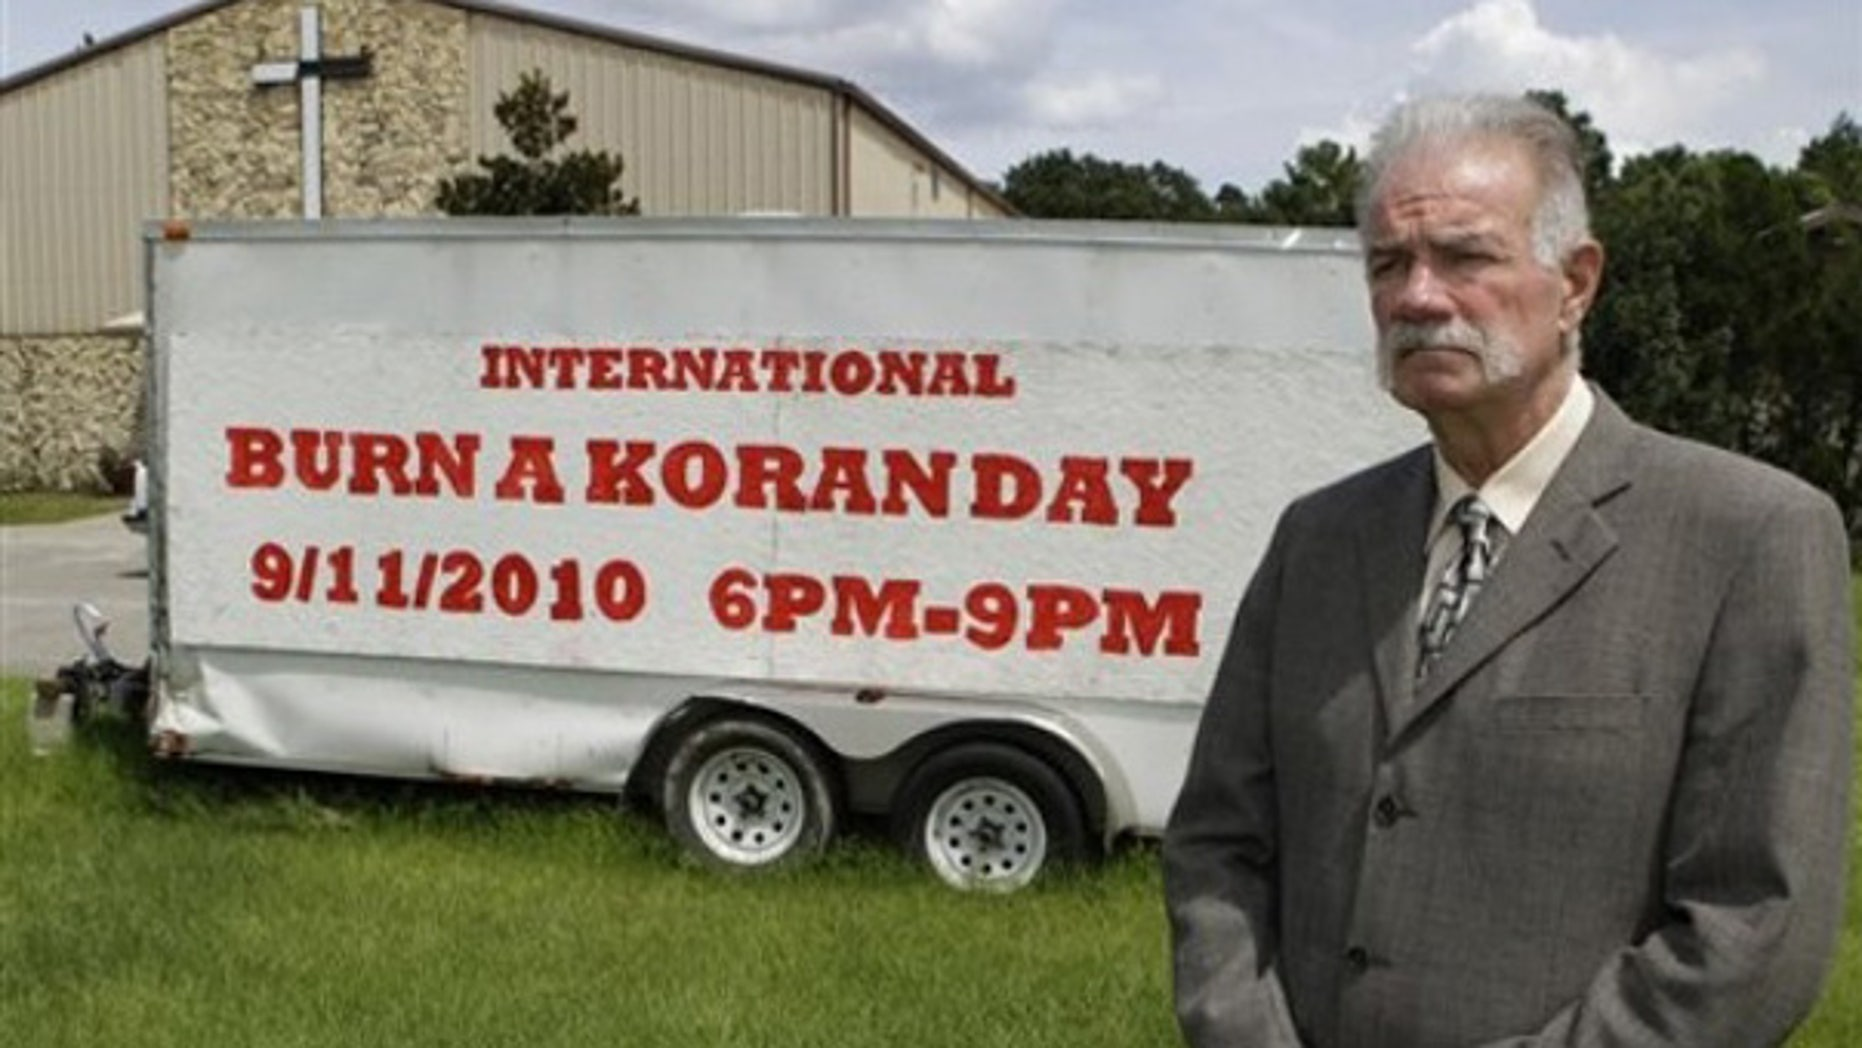 Aug. 30, 2010: Rev. Terry Jones, seen here at the Dove World Outreach Center in Gainesville, Fla., says he plans to burn copies of the Koran to mark the Sept. 11, 2001, terrorist attacks despite the potential security threat it will create for U.S. forces in Afghanistan. (AP)